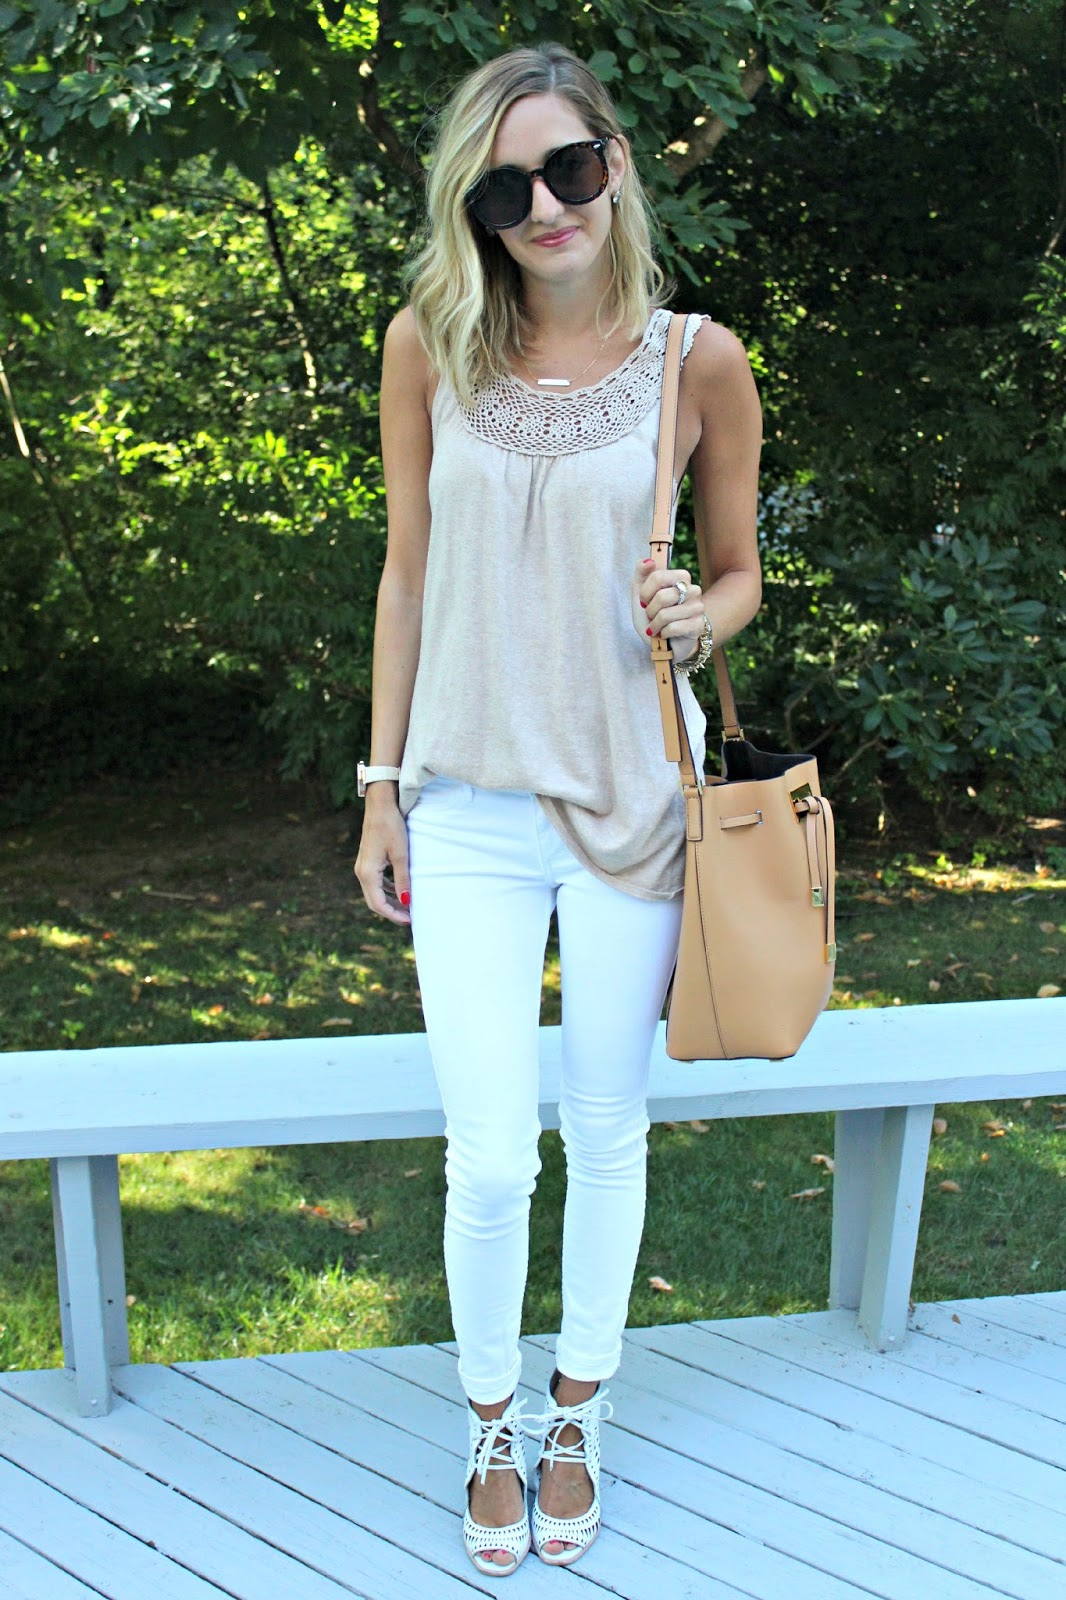 beige and white outfit